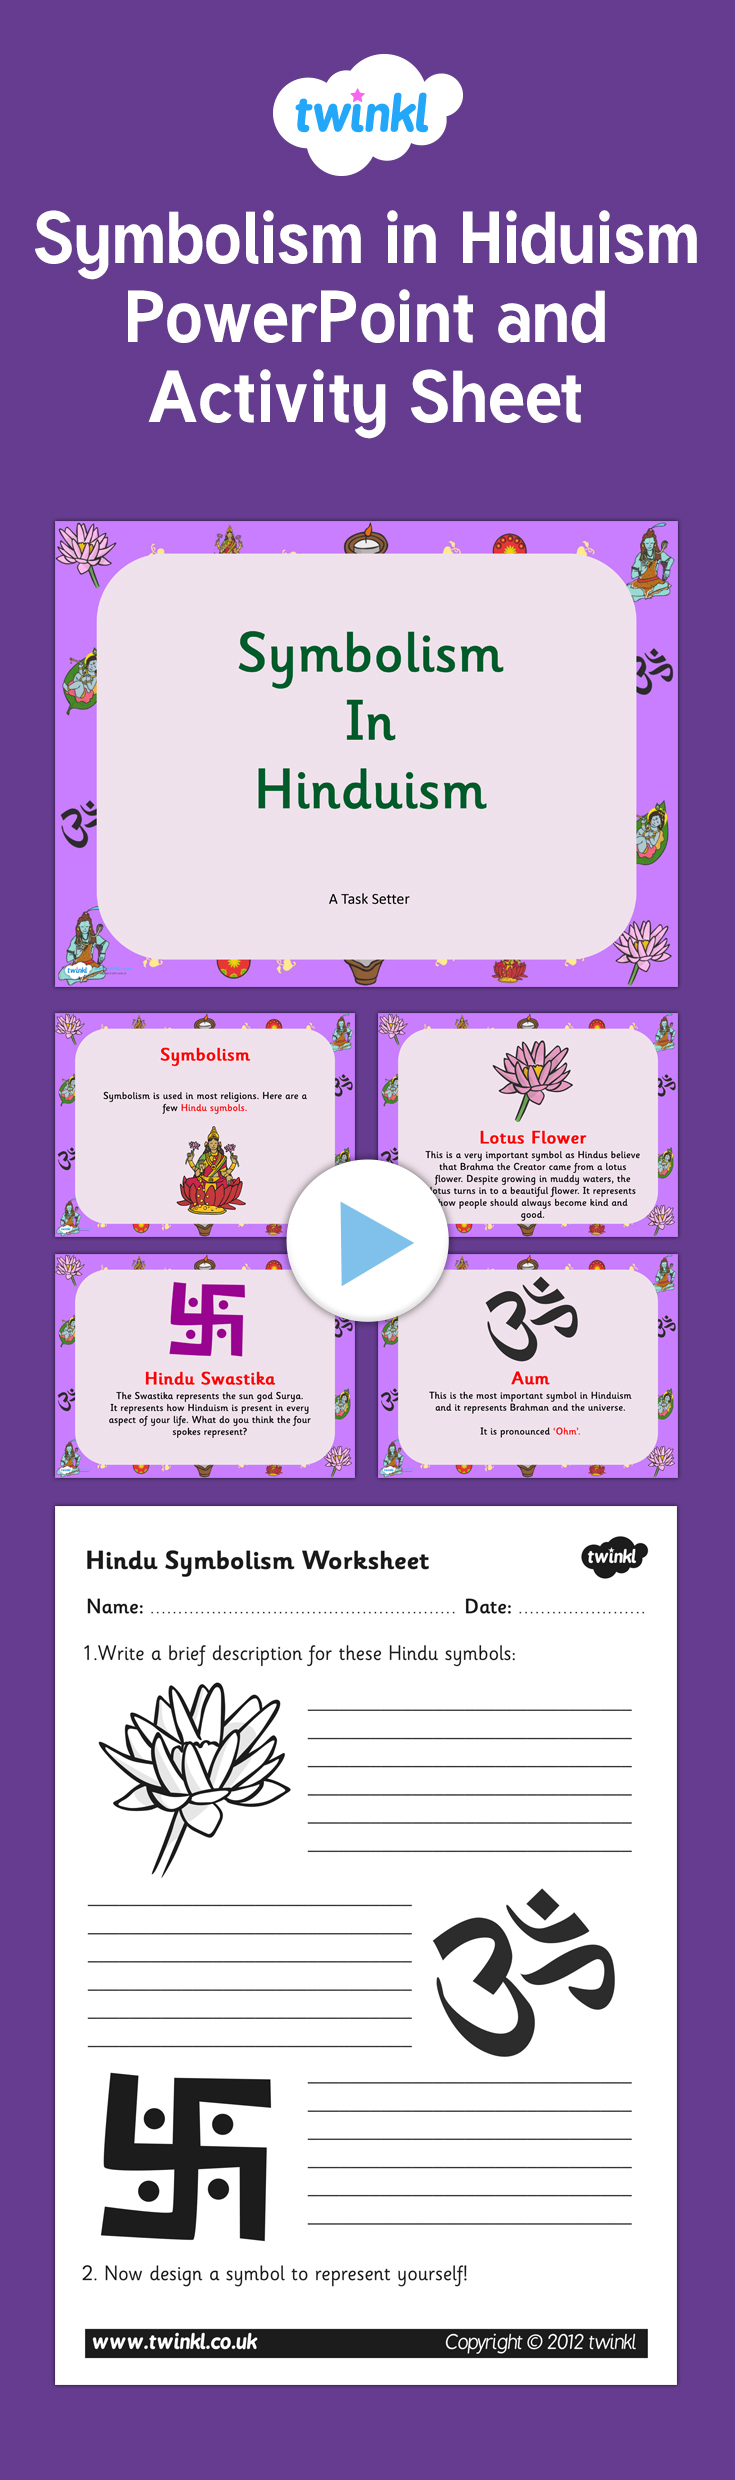 Worksheets Symbolism Worksheet symbolism in hinduism powerpoint and activity sheet pack this fantastic includes our in